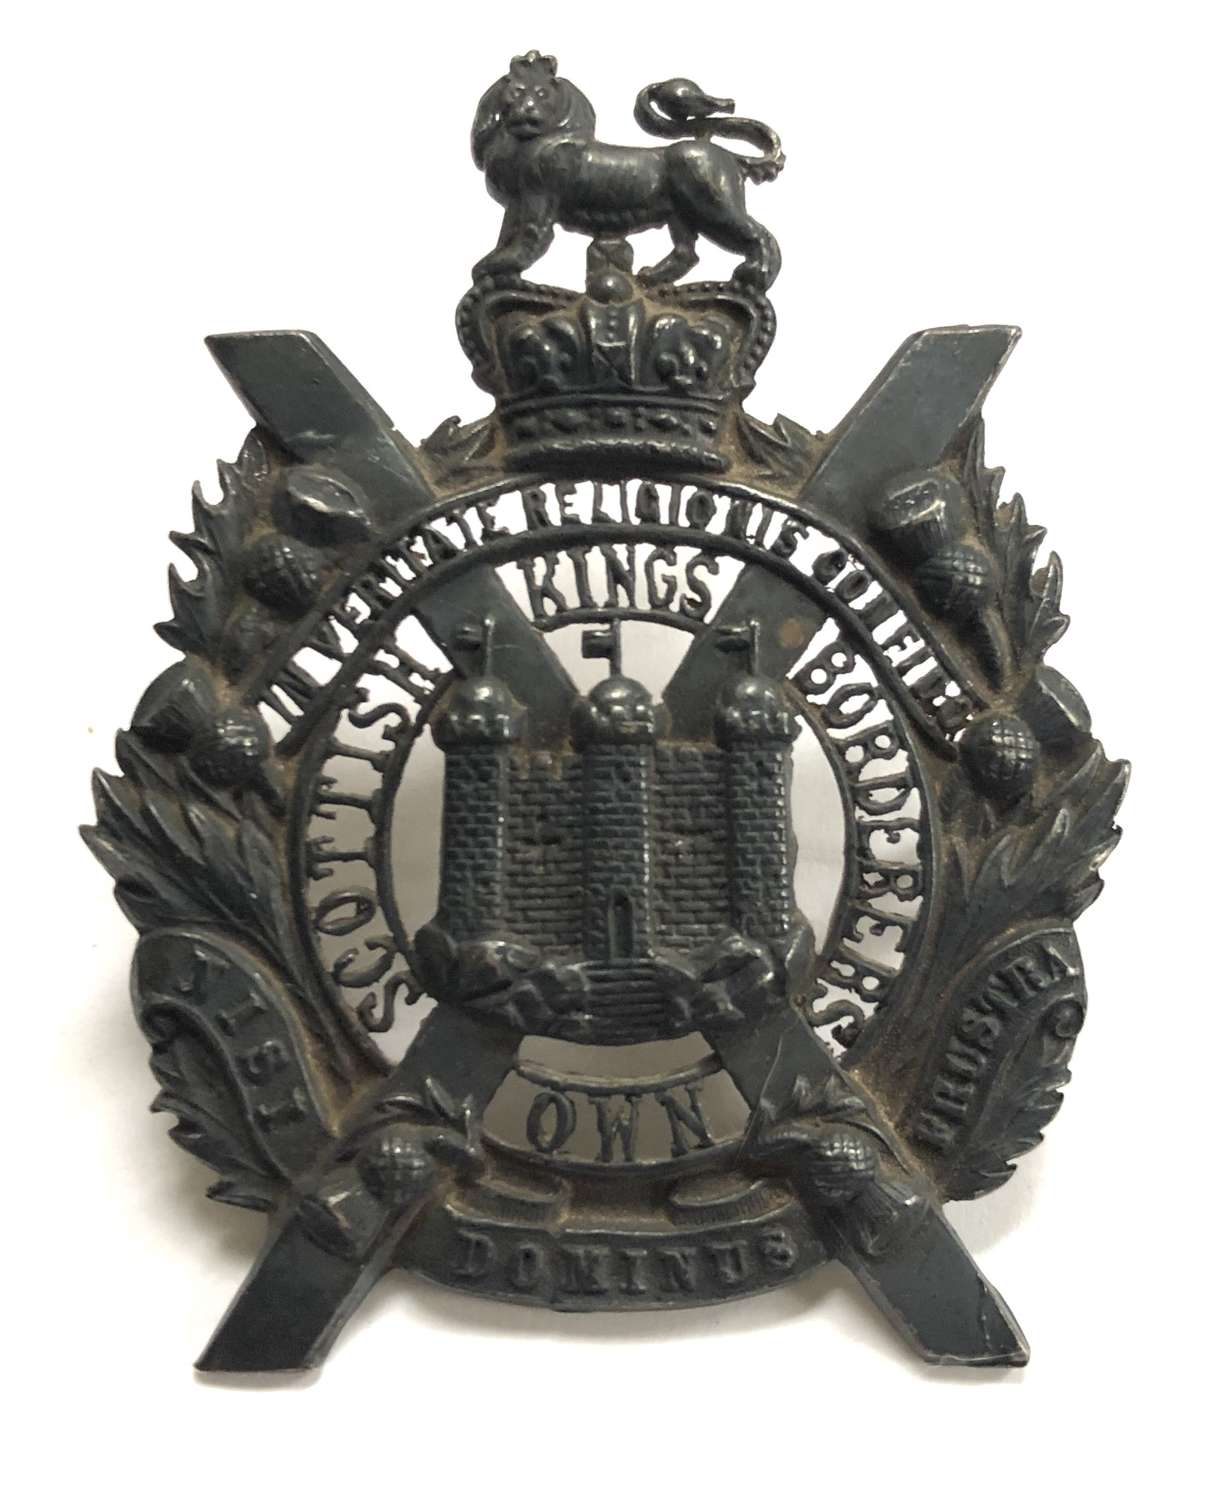 King's Own Scottish Borderers post 1953 Officer's glengarry badge